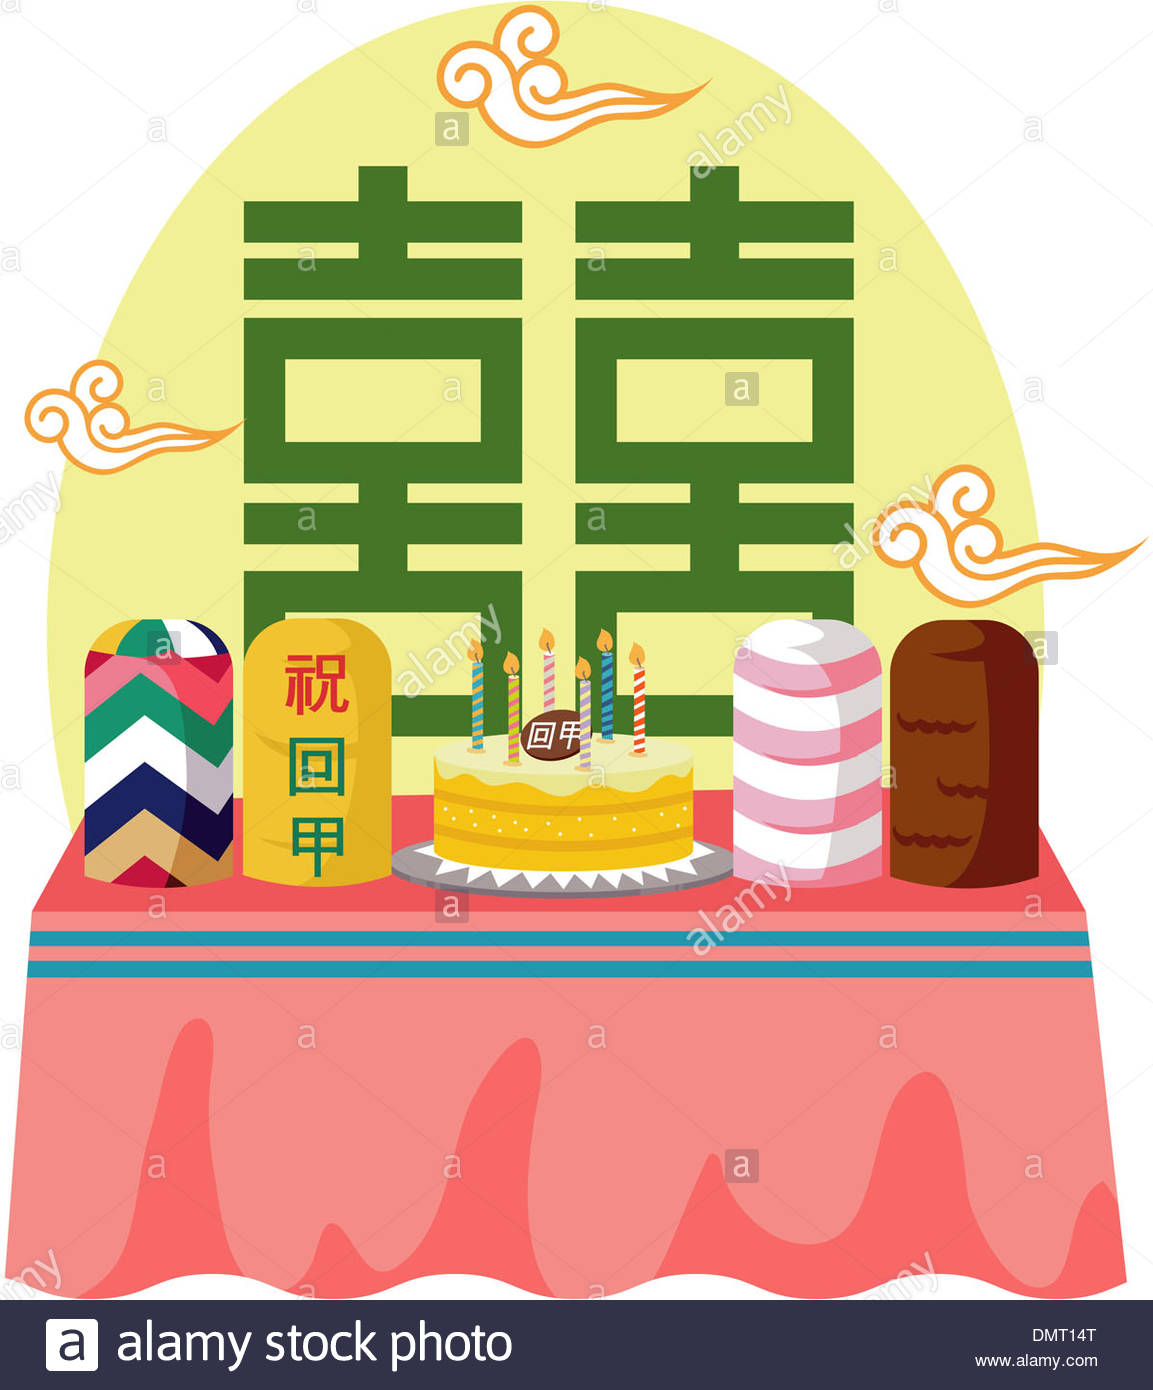 Chinese character korean dress feast for 60th birthday chinese character korean dress feast for 60th birthday tradition cultural 60th birthday anniversary biocorpaavc Image collections